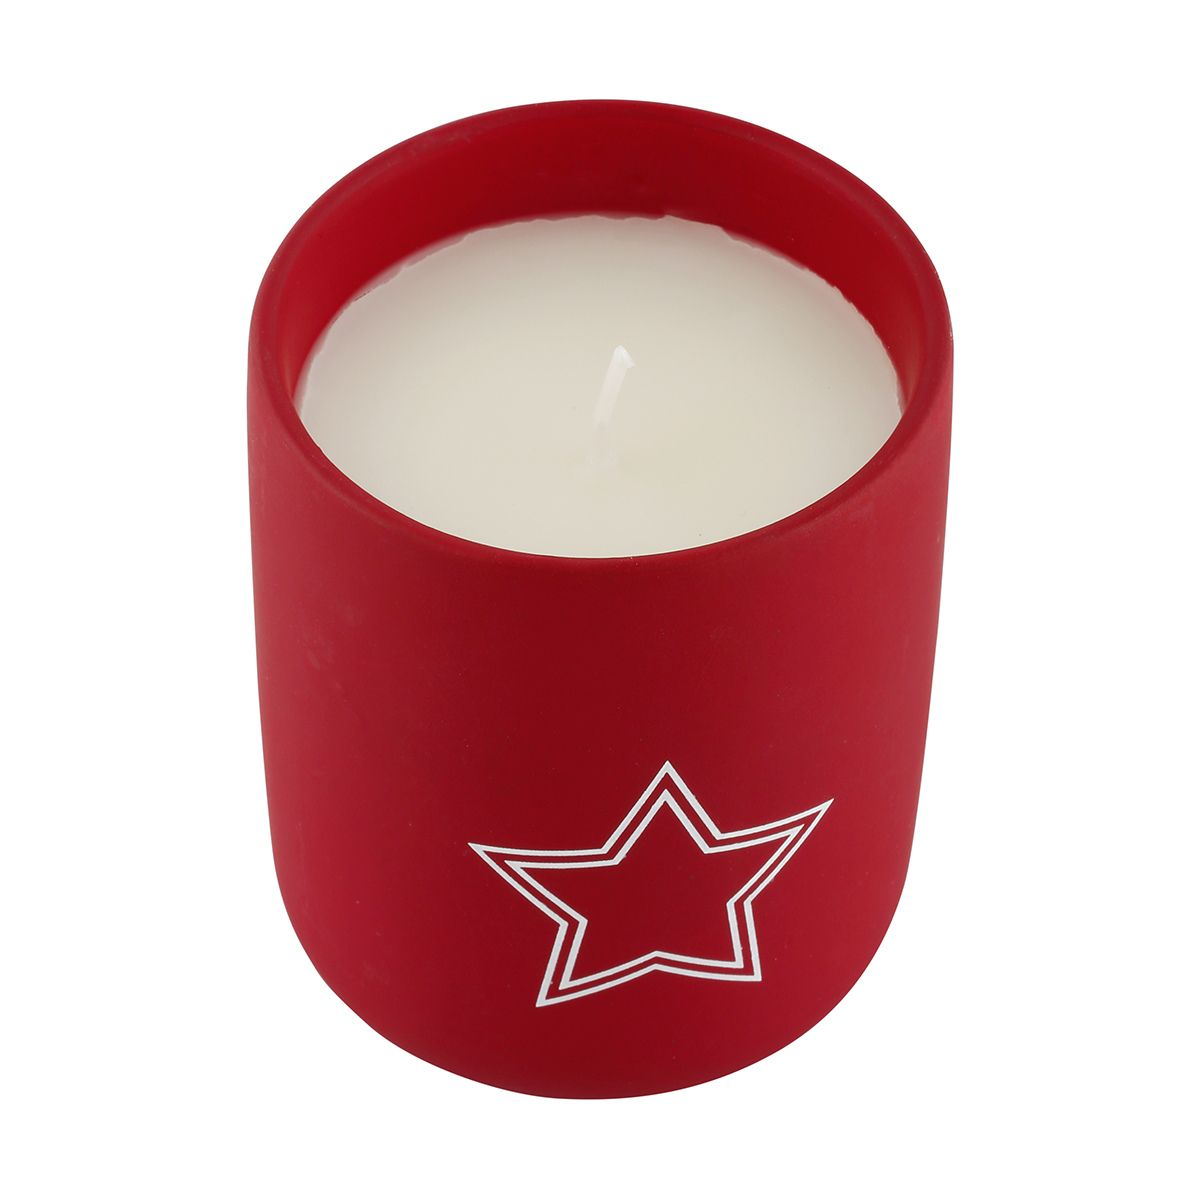 Christmas Cookie Fragrant Candle Kmart Fragrant Candles Candles Christmas Cookies